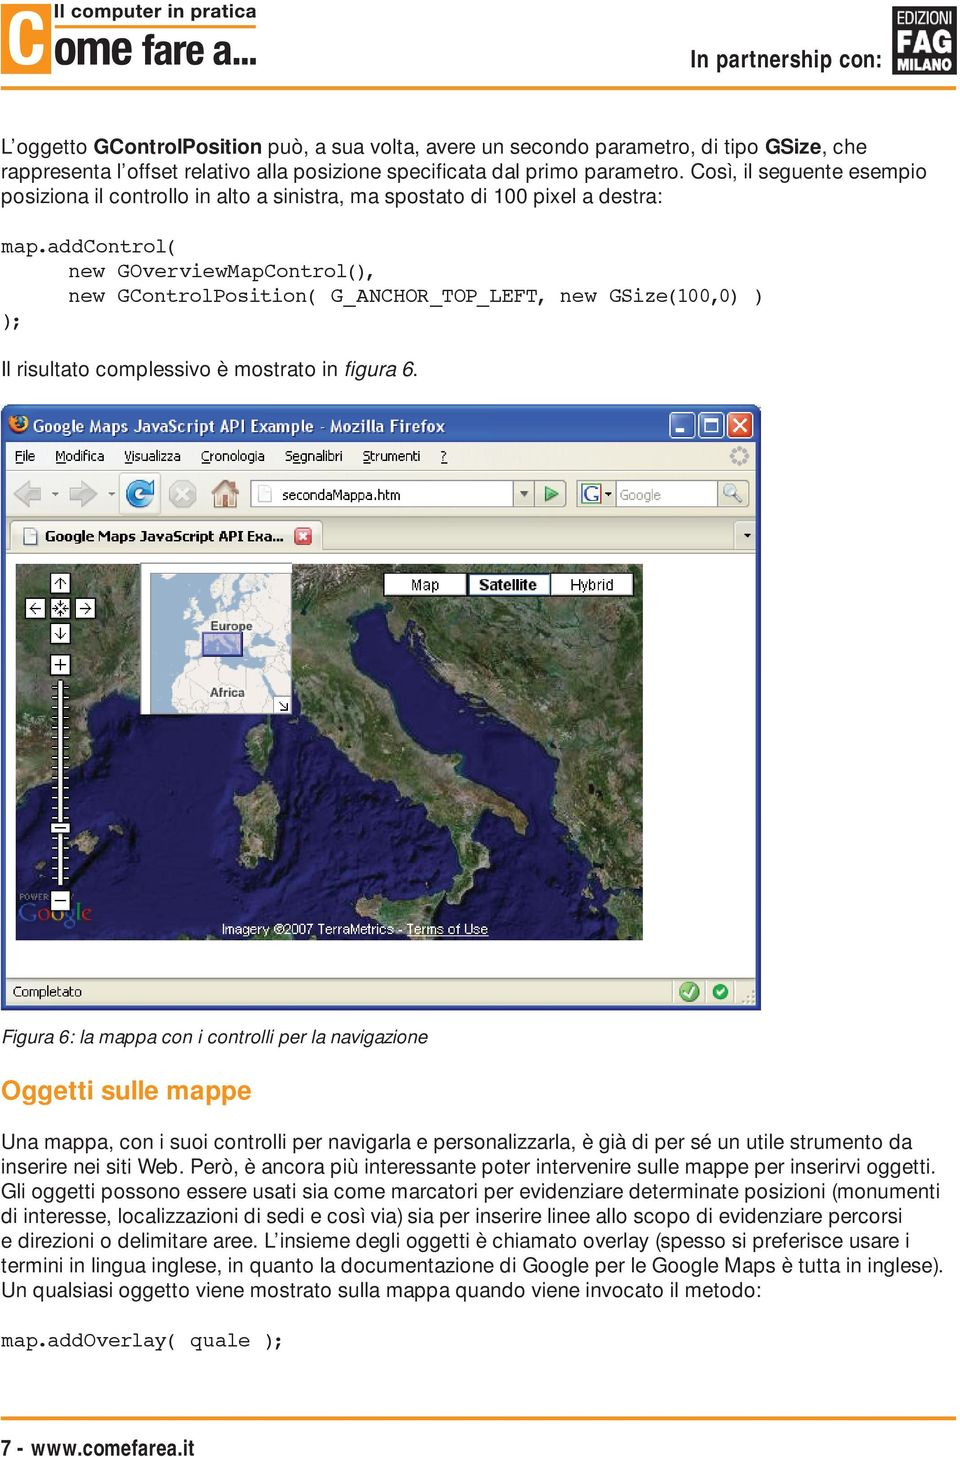 addcontrol( new GOverviewMapControl(), new GControlPosition( G_ANCHOR_TOP_LEFT, new GSize(100,0) ) Il risultato complessivo è mostrato in figura 6.